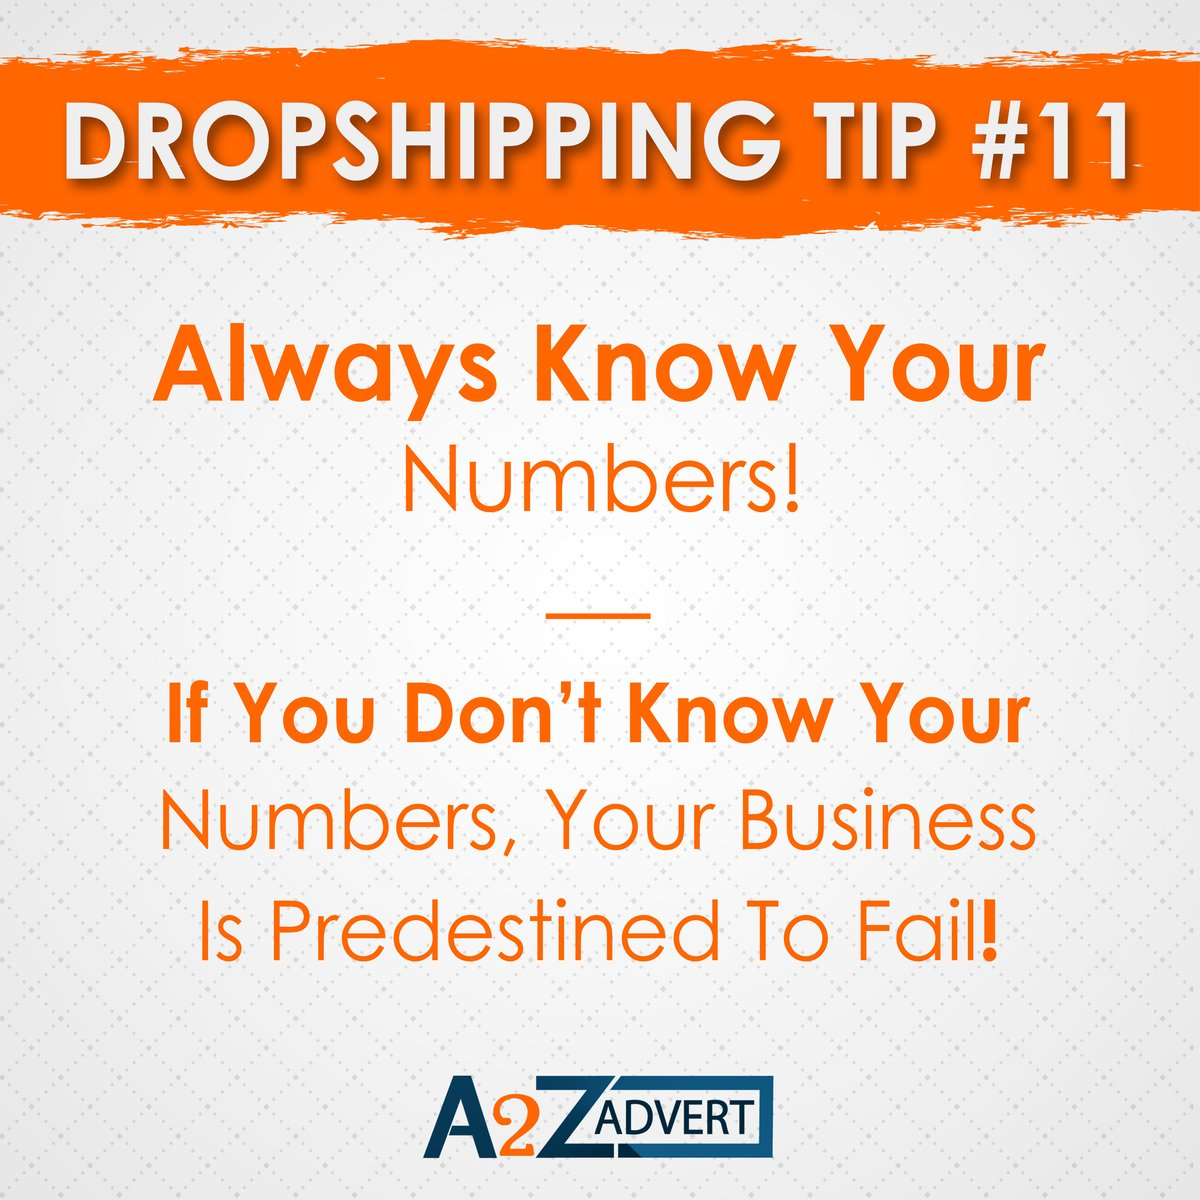 DropShipping Tip #11 Agreed or Not? Leave comments Helping you for your dropshiping business. #dropshippingbusiness #atozadvert #dropshipping #shopify #shopifystores #shopifybusiness #shopifyexperts #shopifypartners #successpic.twitter.com/4eGSlwQFgU